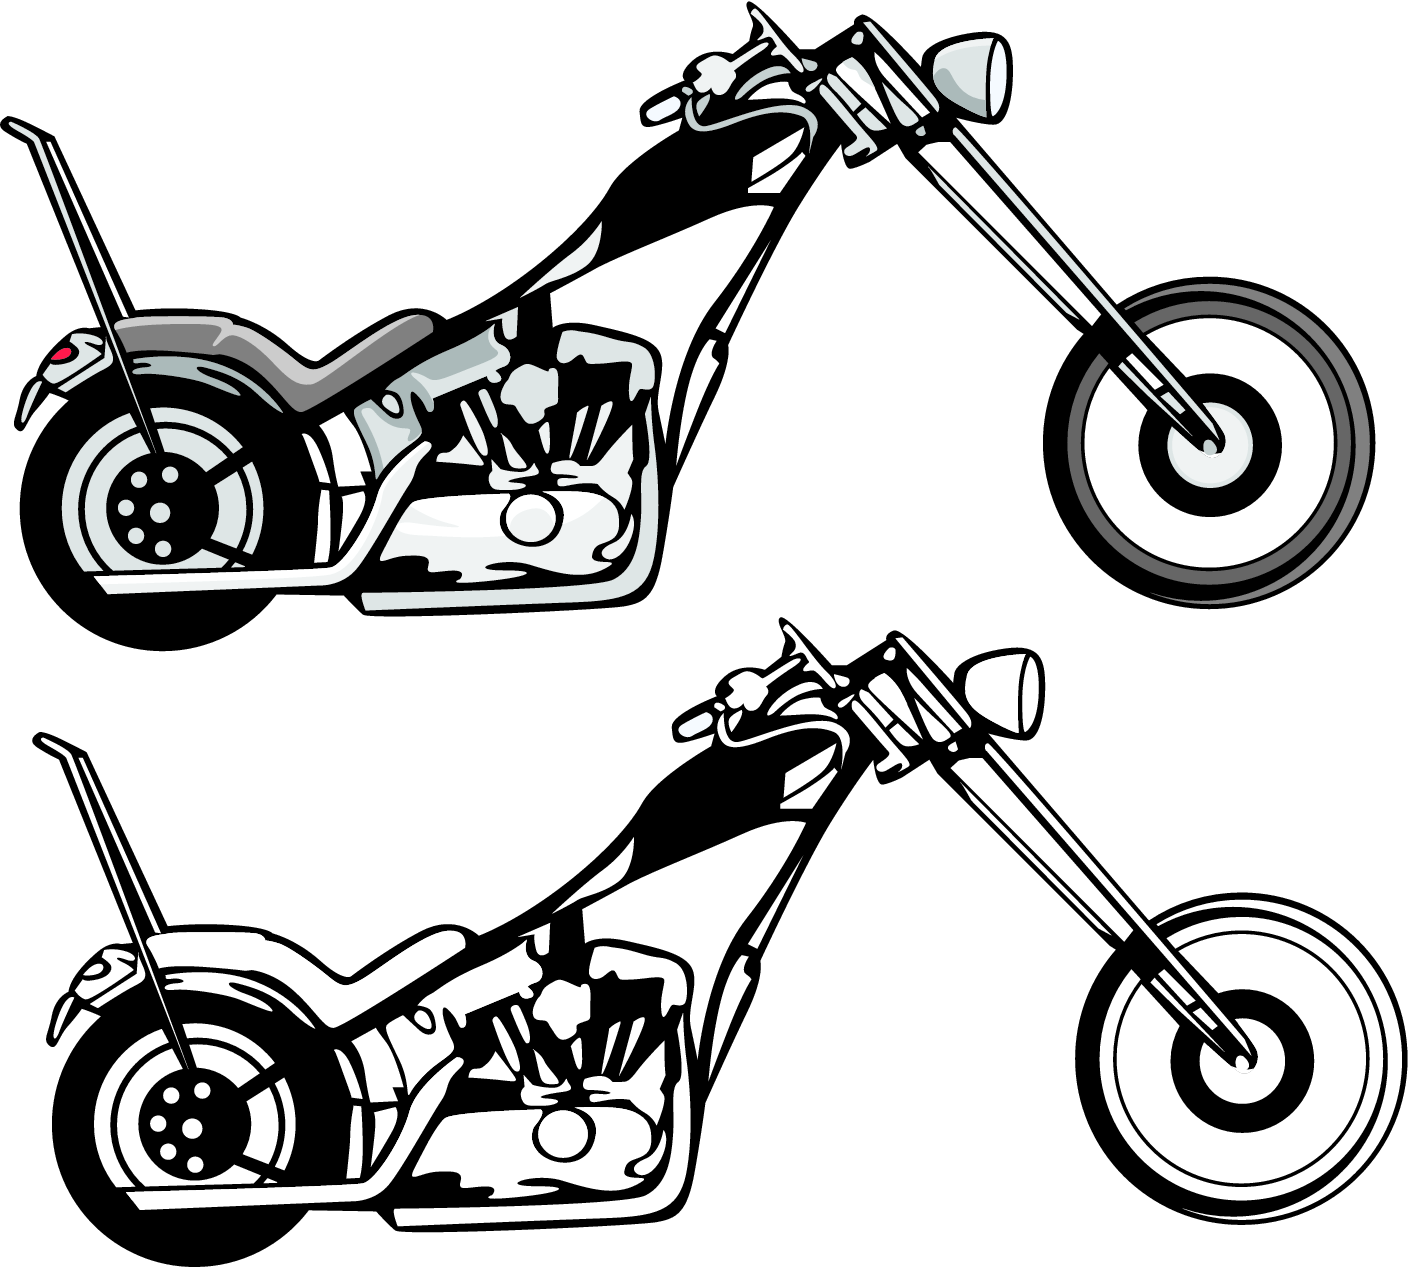 Chopper clipart 20clipart chopper%20clipart Chopper Images Clipart